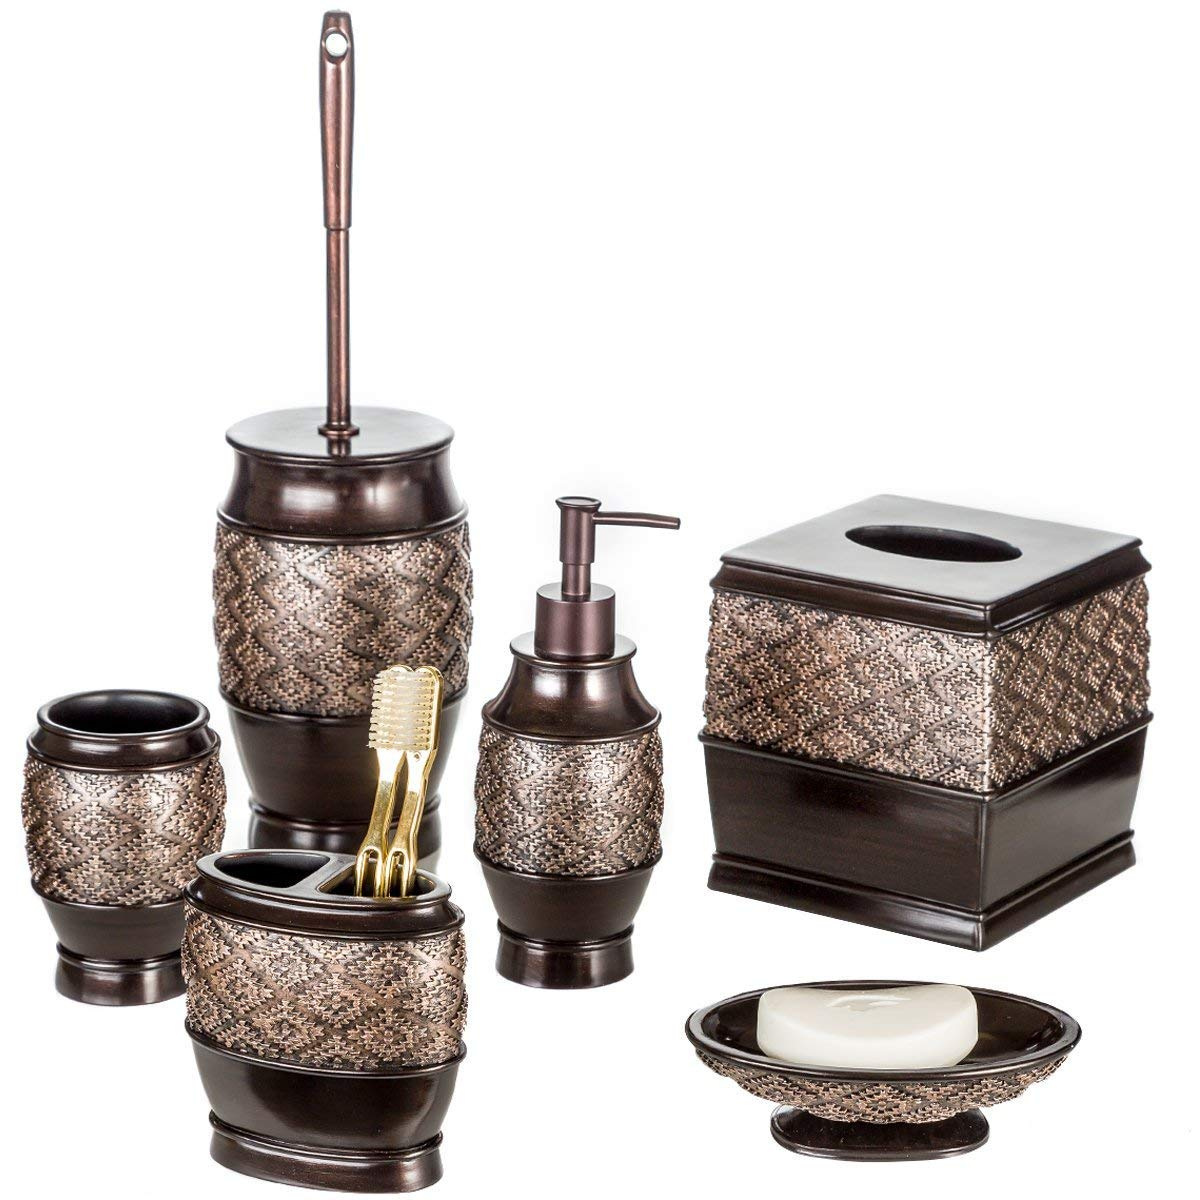 Dublin 6-Piece Bathroom Accessories Set, Includes Decorative Countertop Soap Dispenser, Soap Dish, Tumbler, Toothbrush Holder, Tissue Box Cover and Toilet Bowl Brush (Brown) Creative Scents